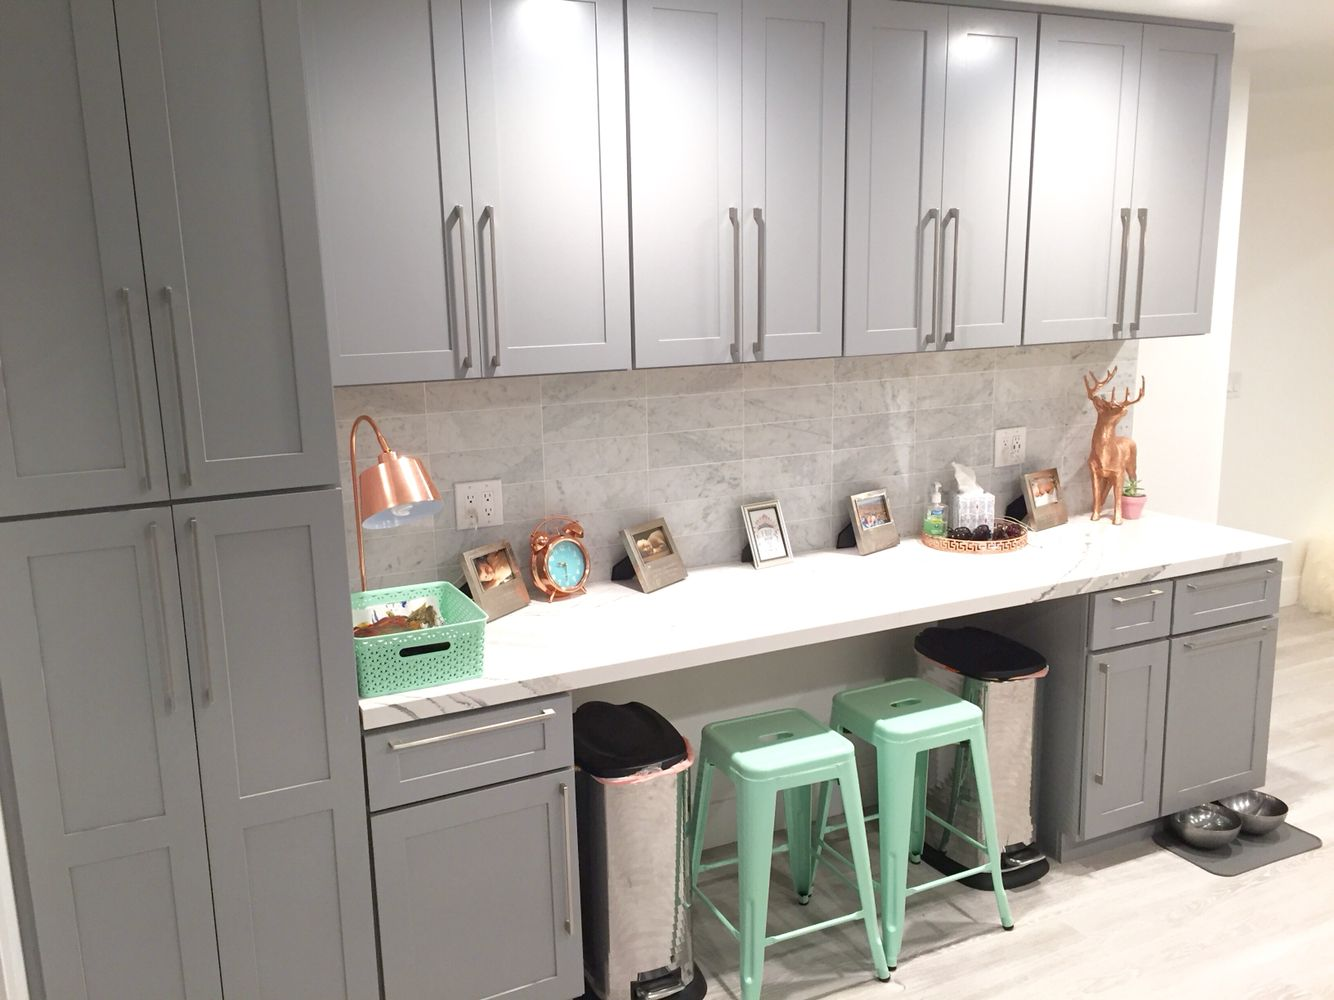 Homeschool work station copper and mint gray cabinets straight straight lay carrara marble subway tile back splash dailygadgetfo Choice Image